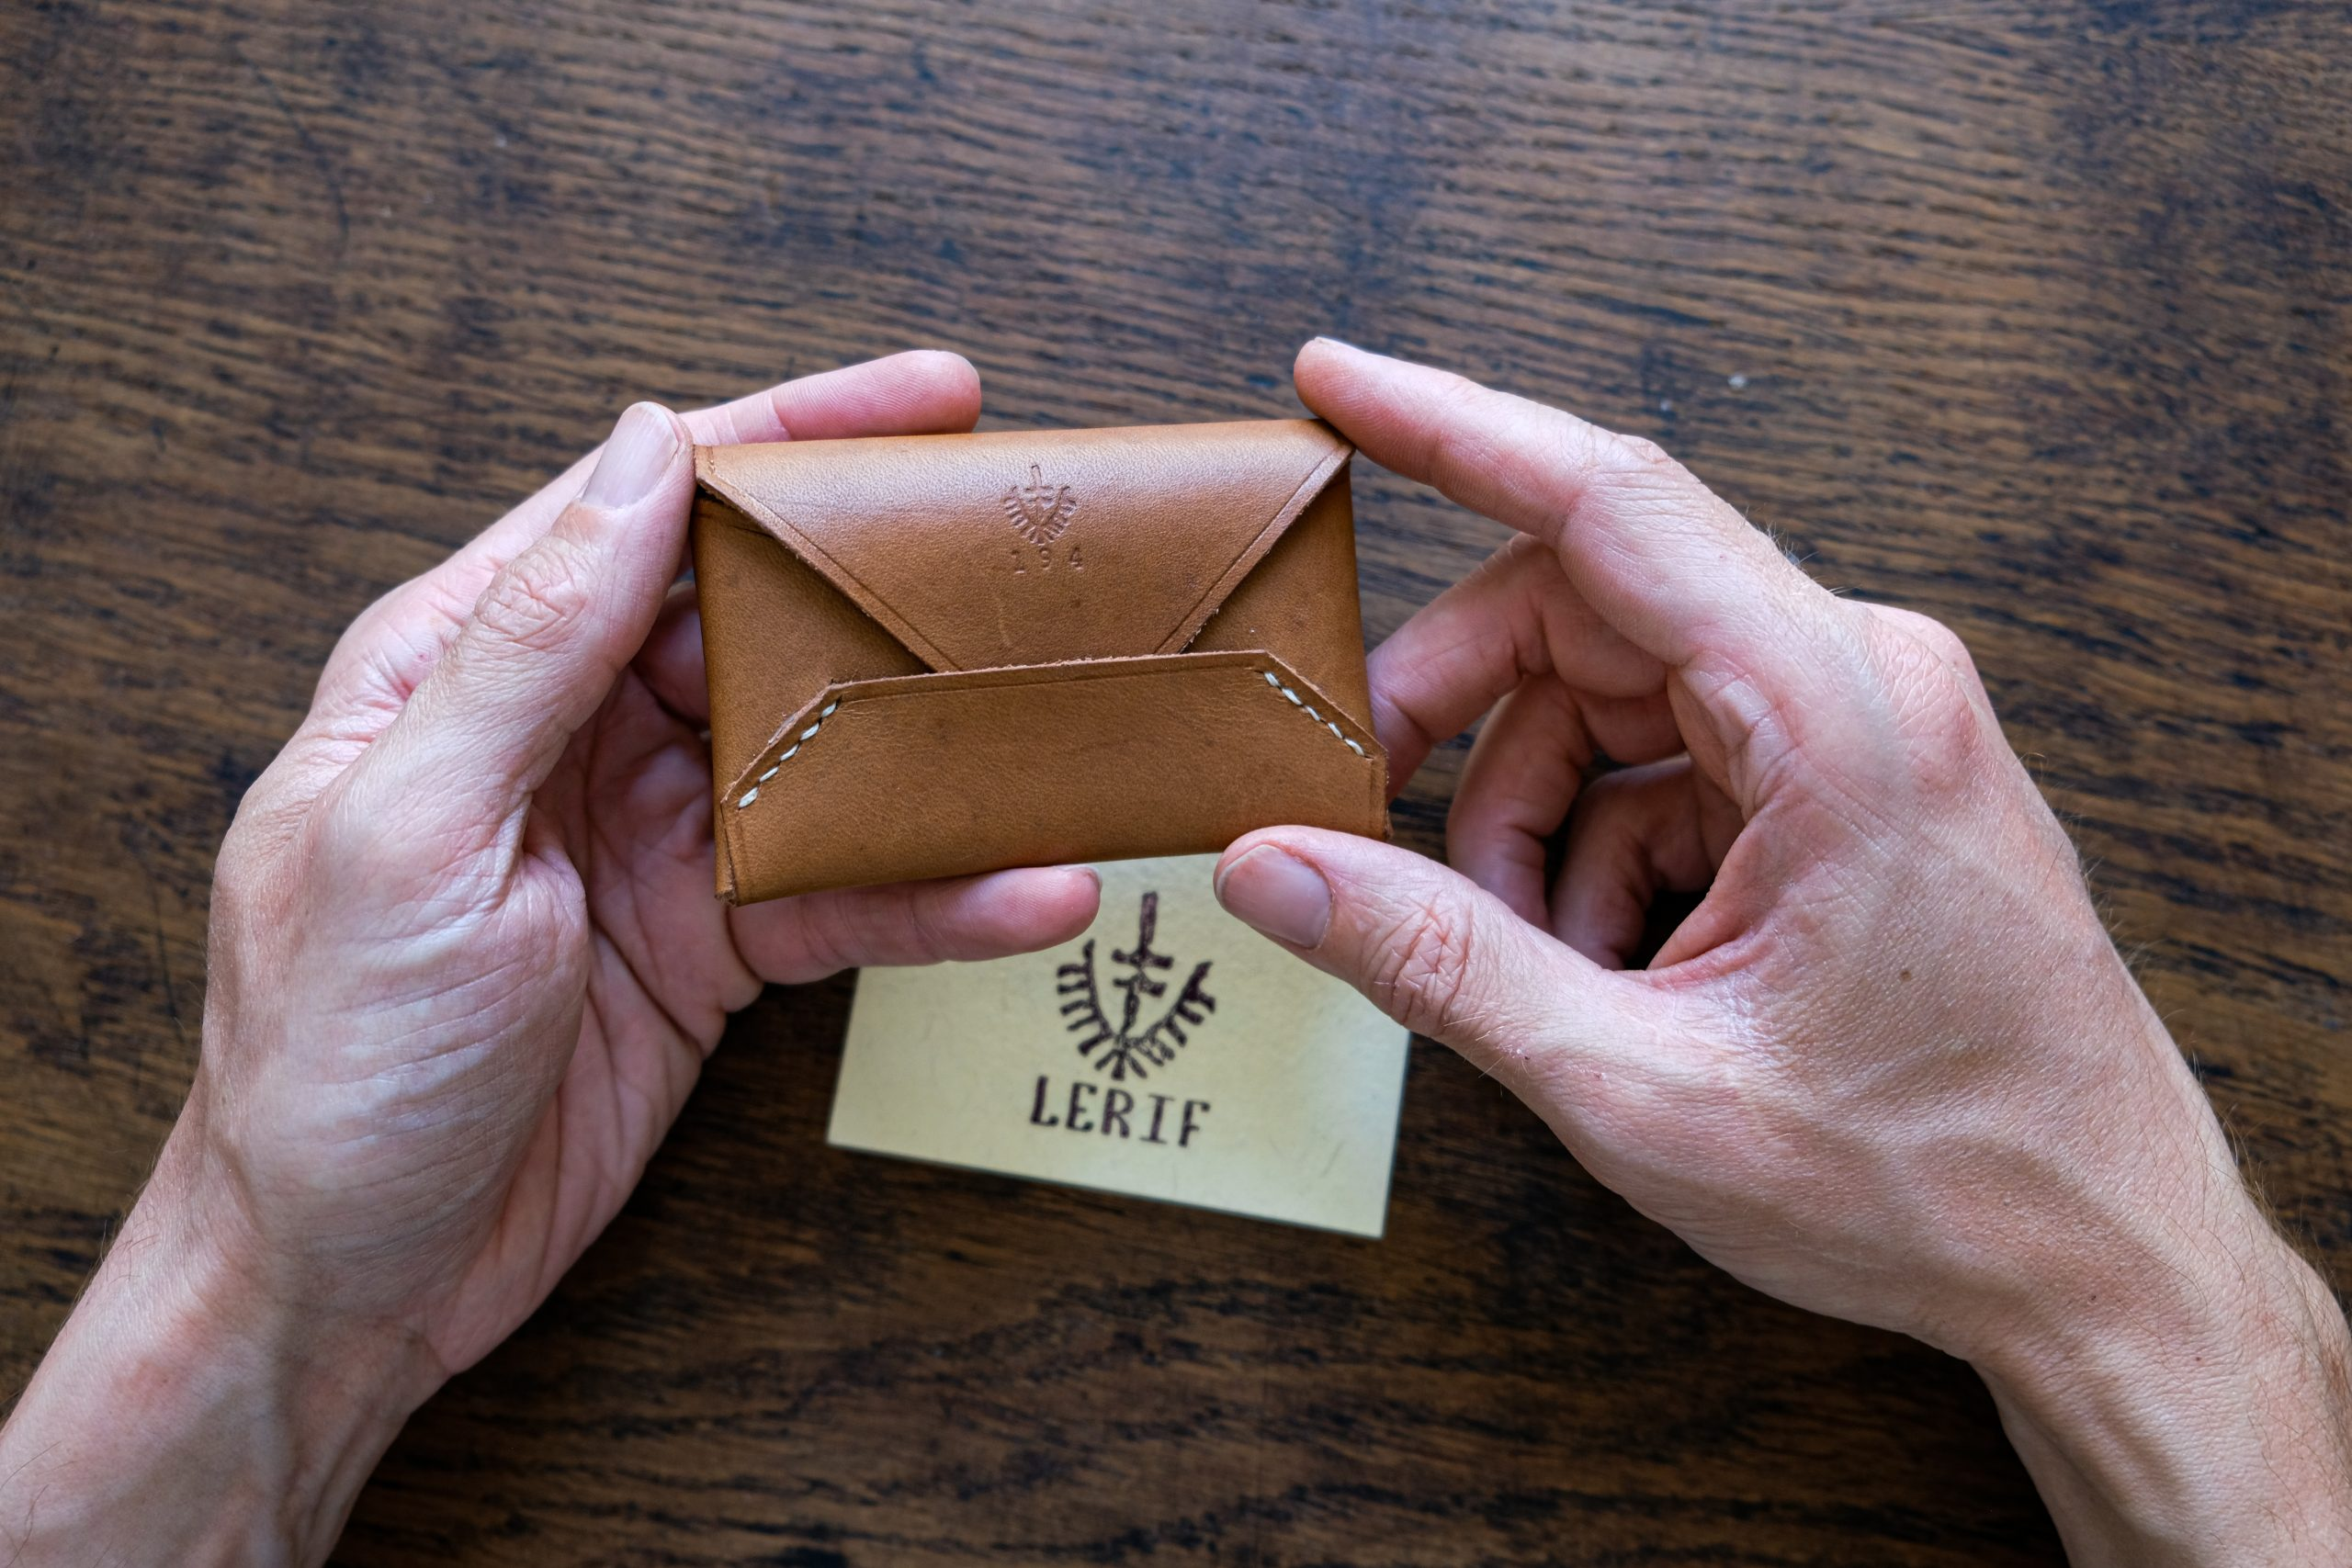 lerif designs leather airmail business card holder in walnut on wood background